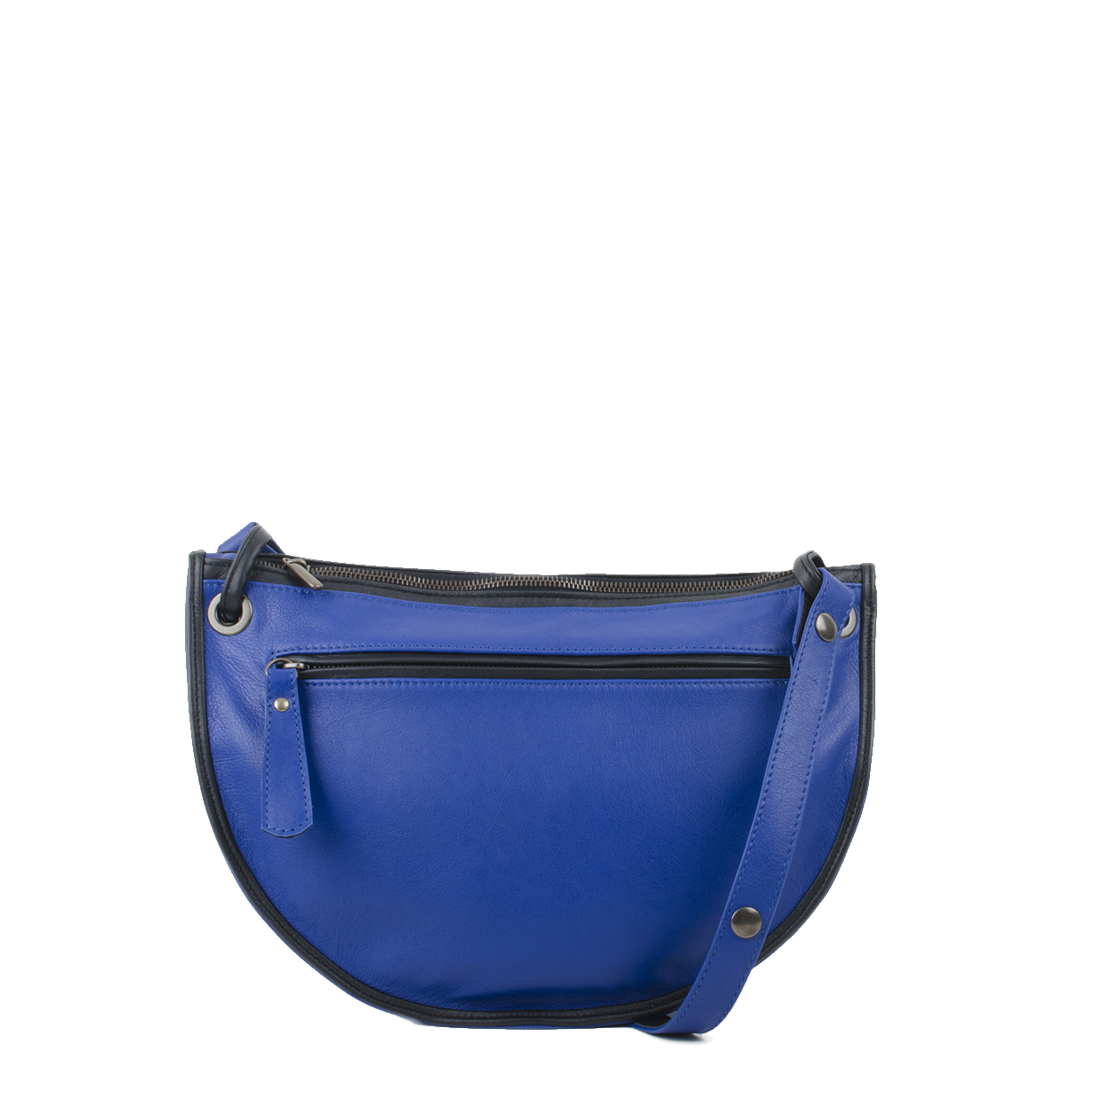 Rachel Blue Leather Across Body Bag